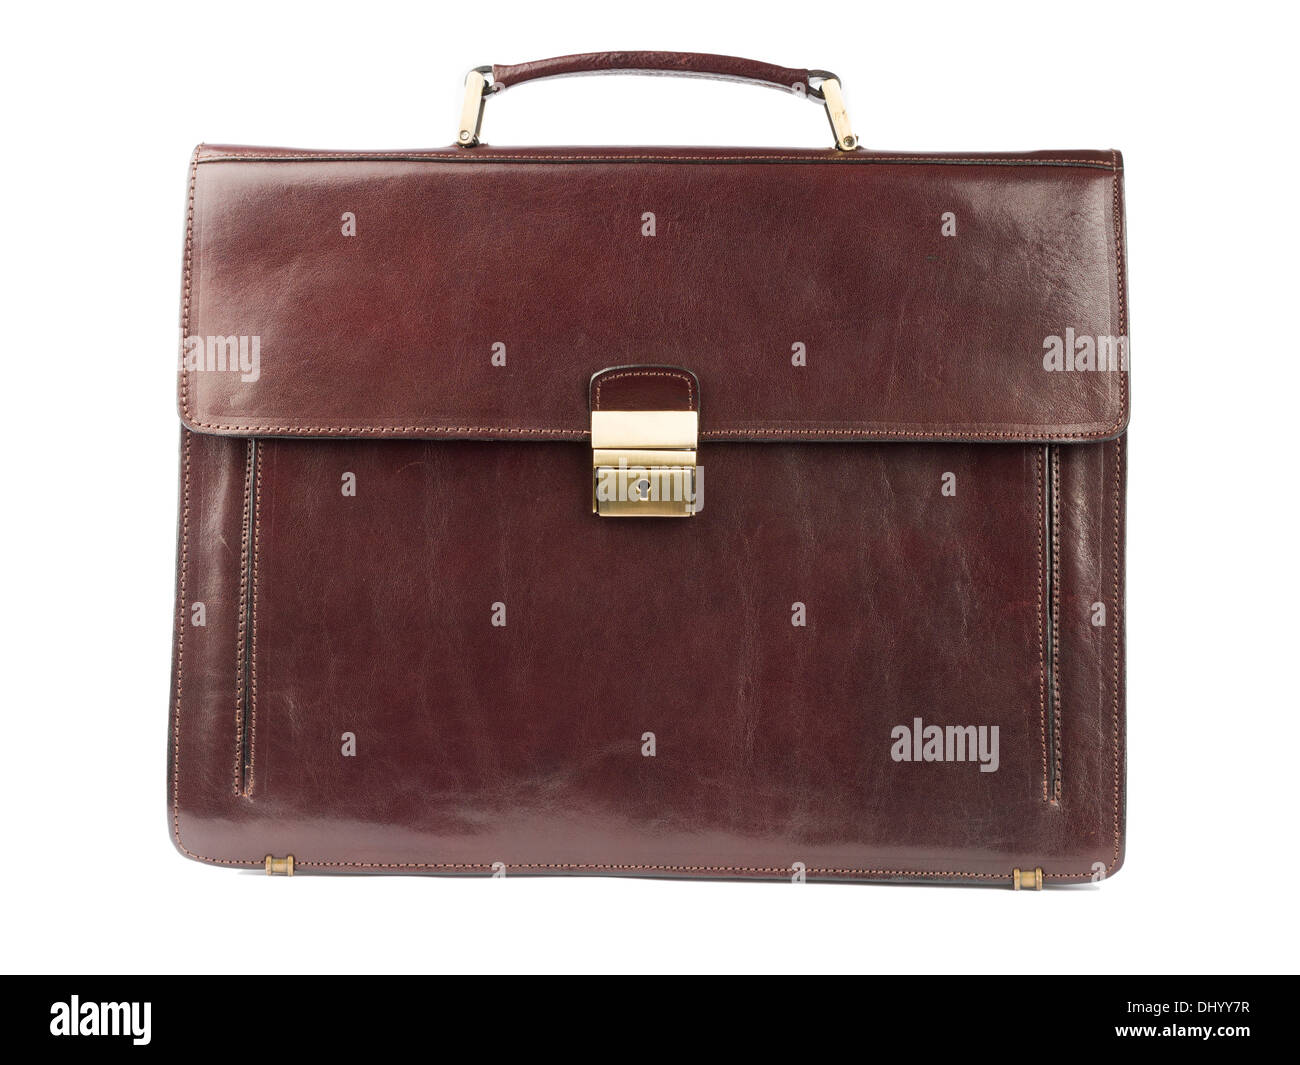 Brown leather briefcase isolated on white background - Stock Image